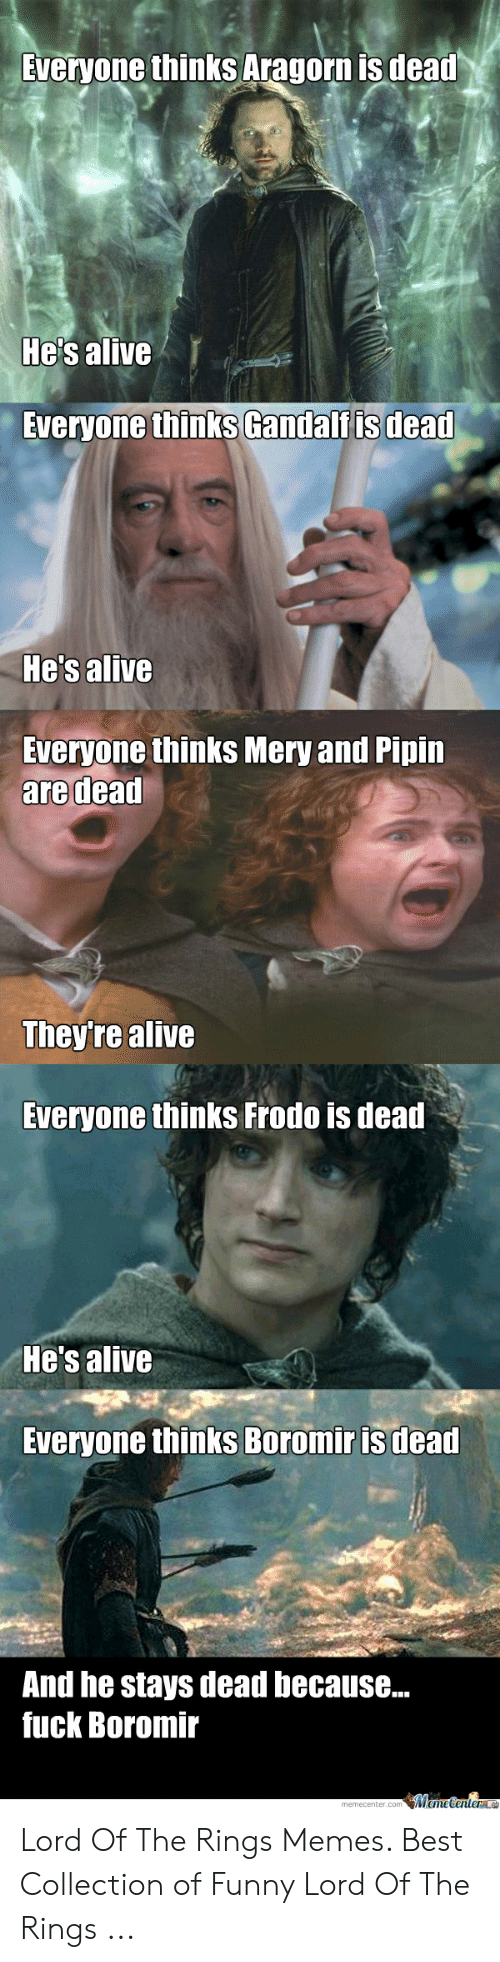 funny lotr: Sveryone thinks Aragorn is deat  He's alive  Everyone thinks Gandalfis dead  Hes alive  Everyone thinks Mery and Pipin  are dead  They're alive  Everyone thinks Frodo is dead  He's alive  Everyone thinks Boromir is dead  And he stays dead because...  fuck Boromir  memecenter.com MemeCenterl Lord Of The Rings Memes. Best Collection of Funny Lord Of The Rings ...